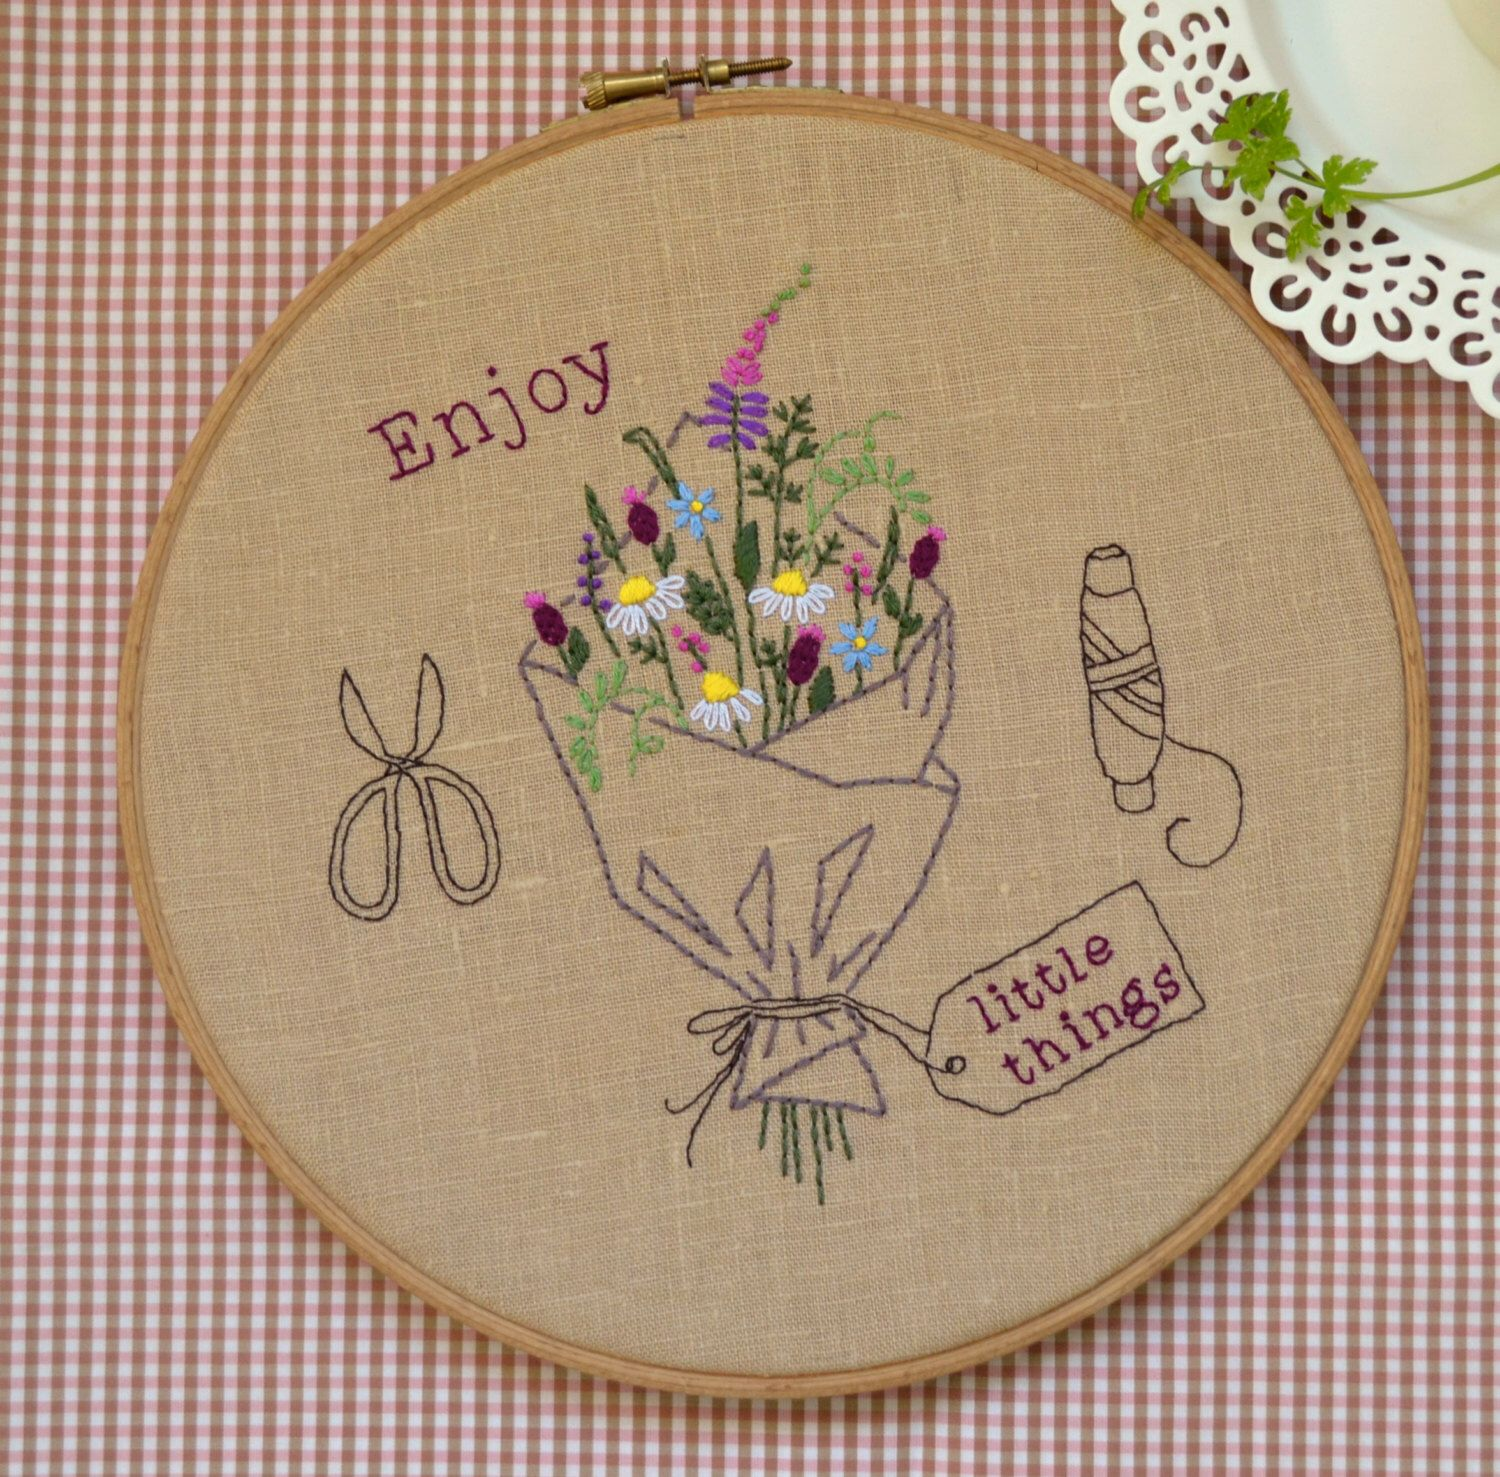 Hand embroidery hoop art embroidery hoop DIY Gift embroidery